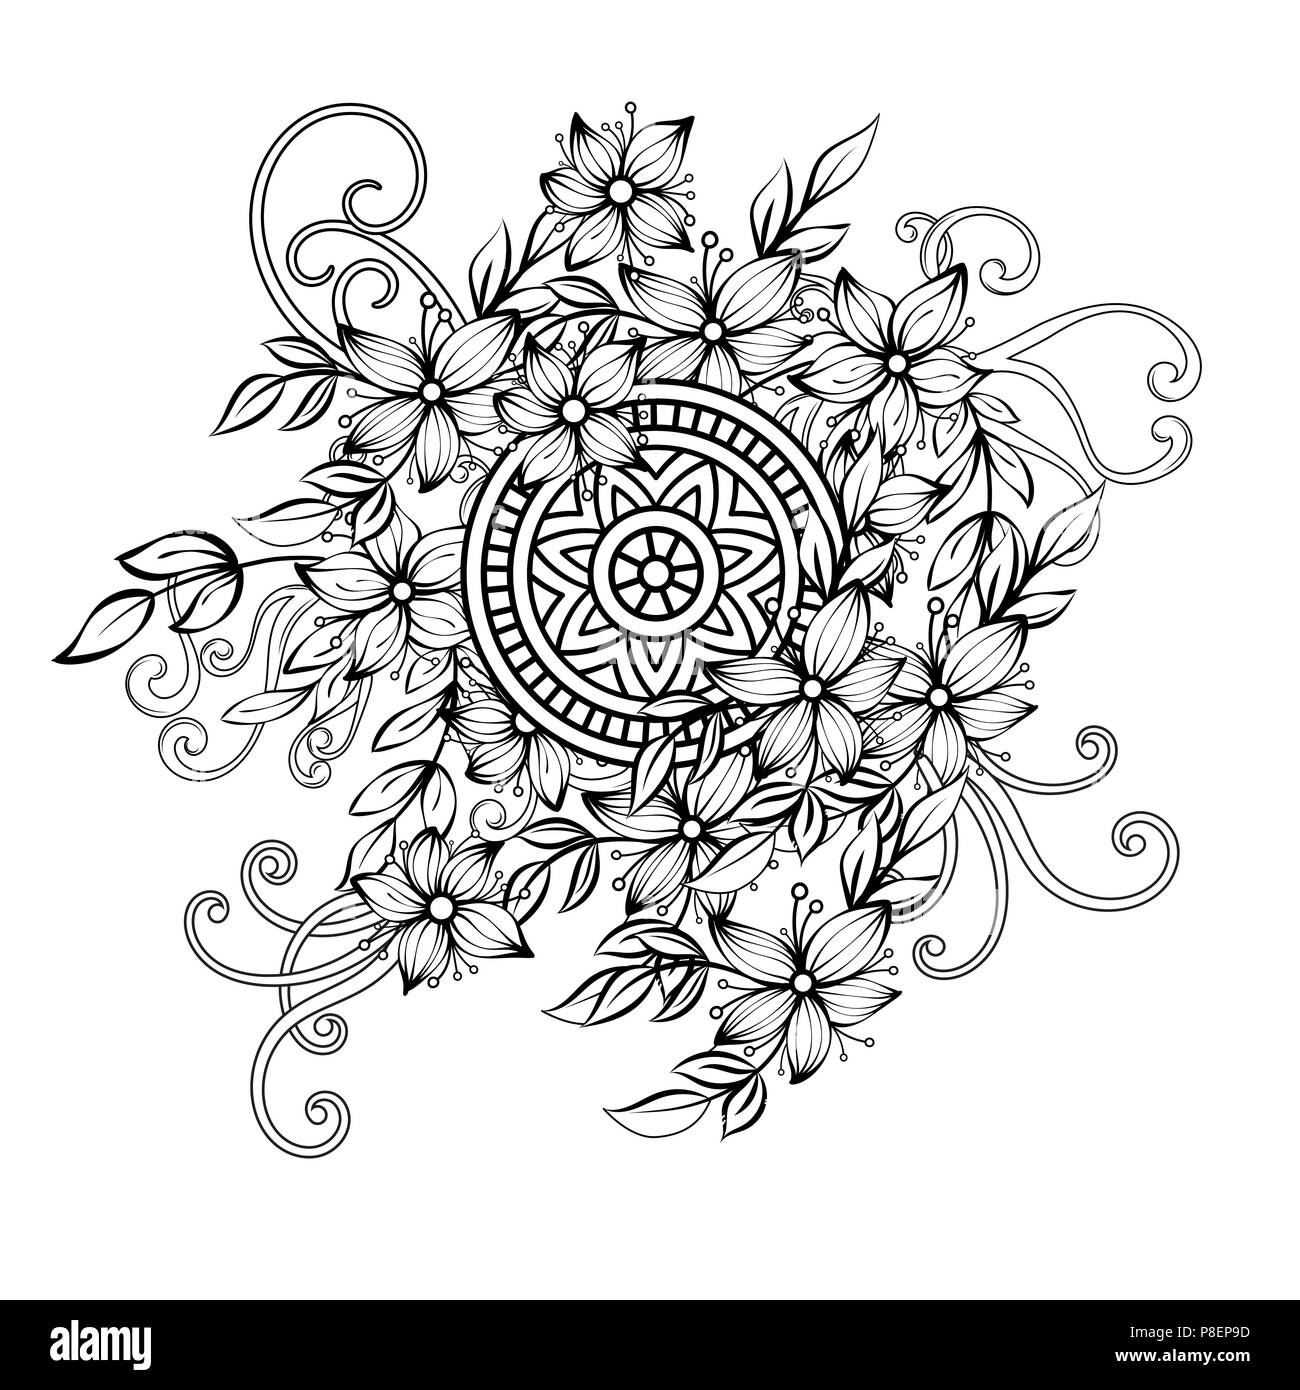 Floral Pattern In Black And White Adult Coloring Book Page With Flowers And Mandalas Art Therapy Anti Stress Coloring Page Hand Drawn Vector Illustration Stock Vector Image Art Alamy